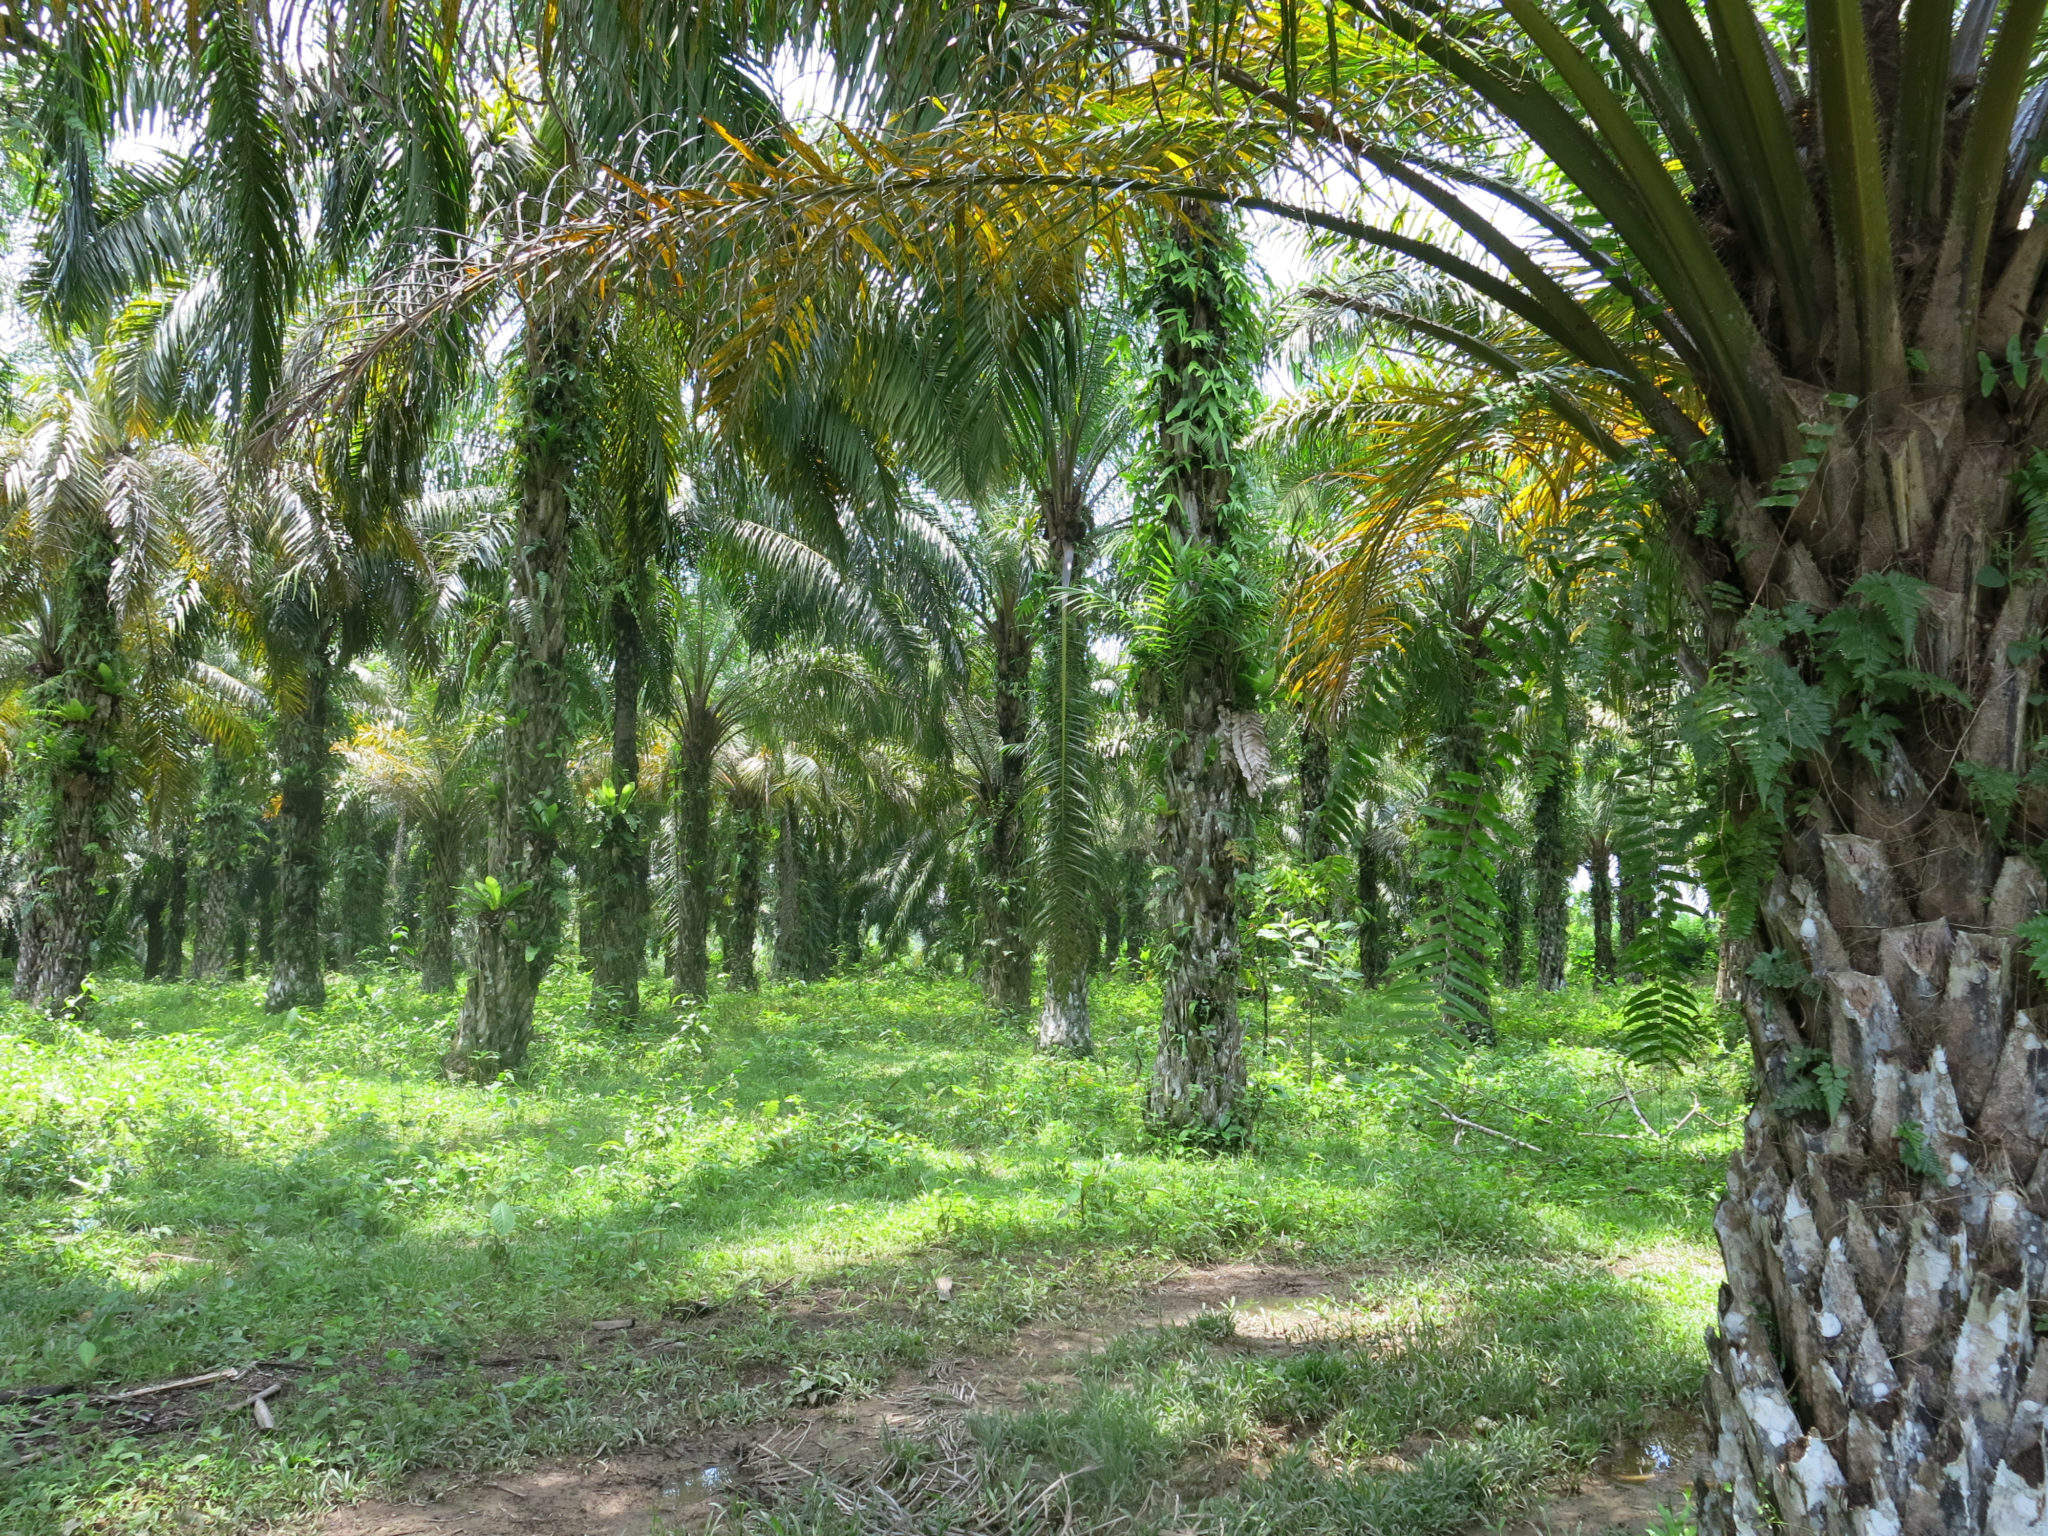 Palmoil Plantation in Sumatra